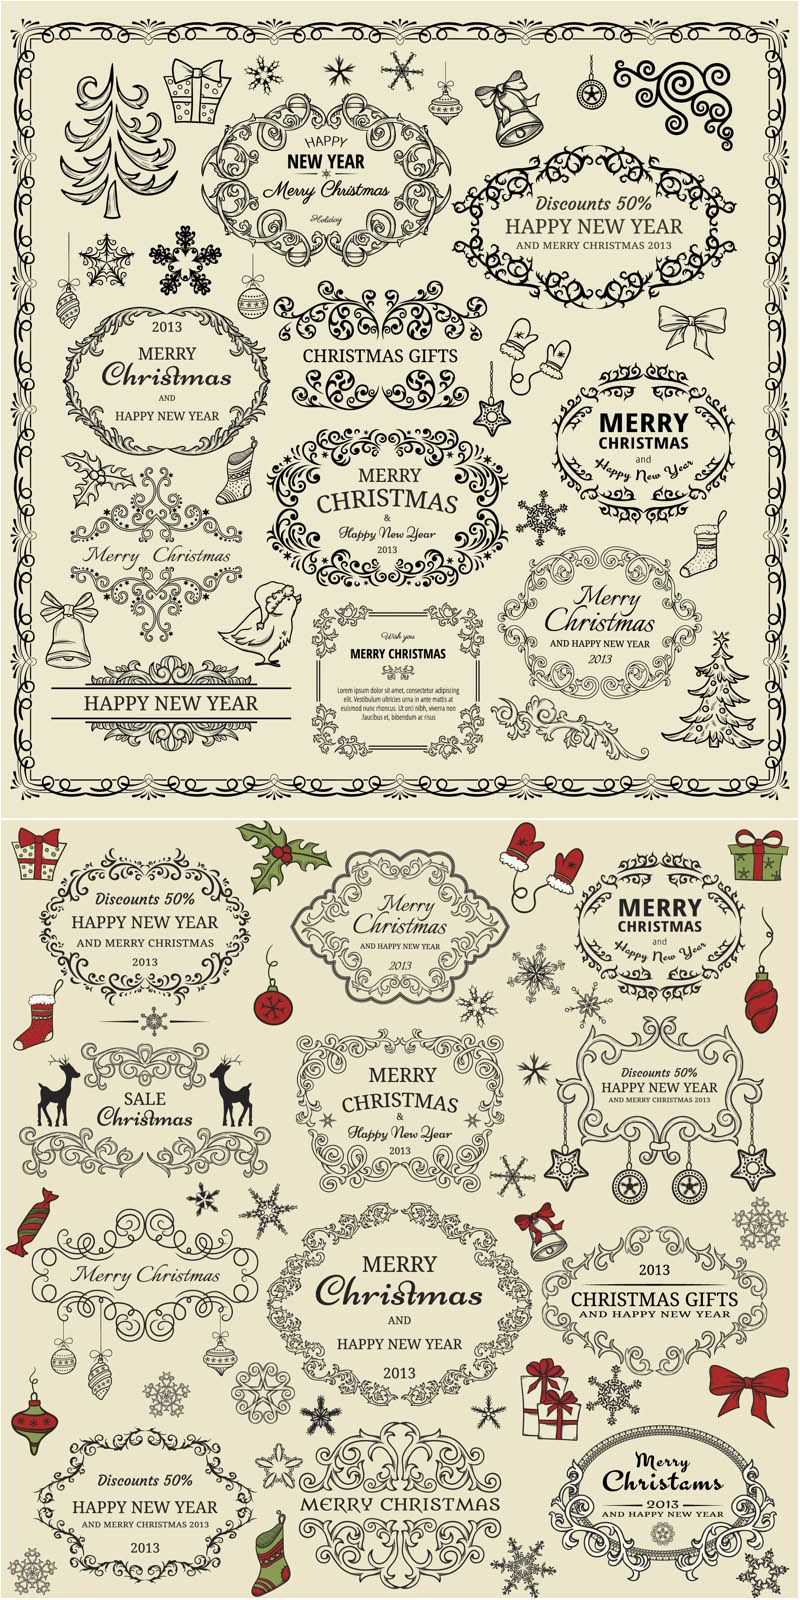 2 sets of classic vector decorative christmas ornate frames and labels with floral ornaments and embellishments for your labels cards vintage postcards - Decorative Christmas Labels